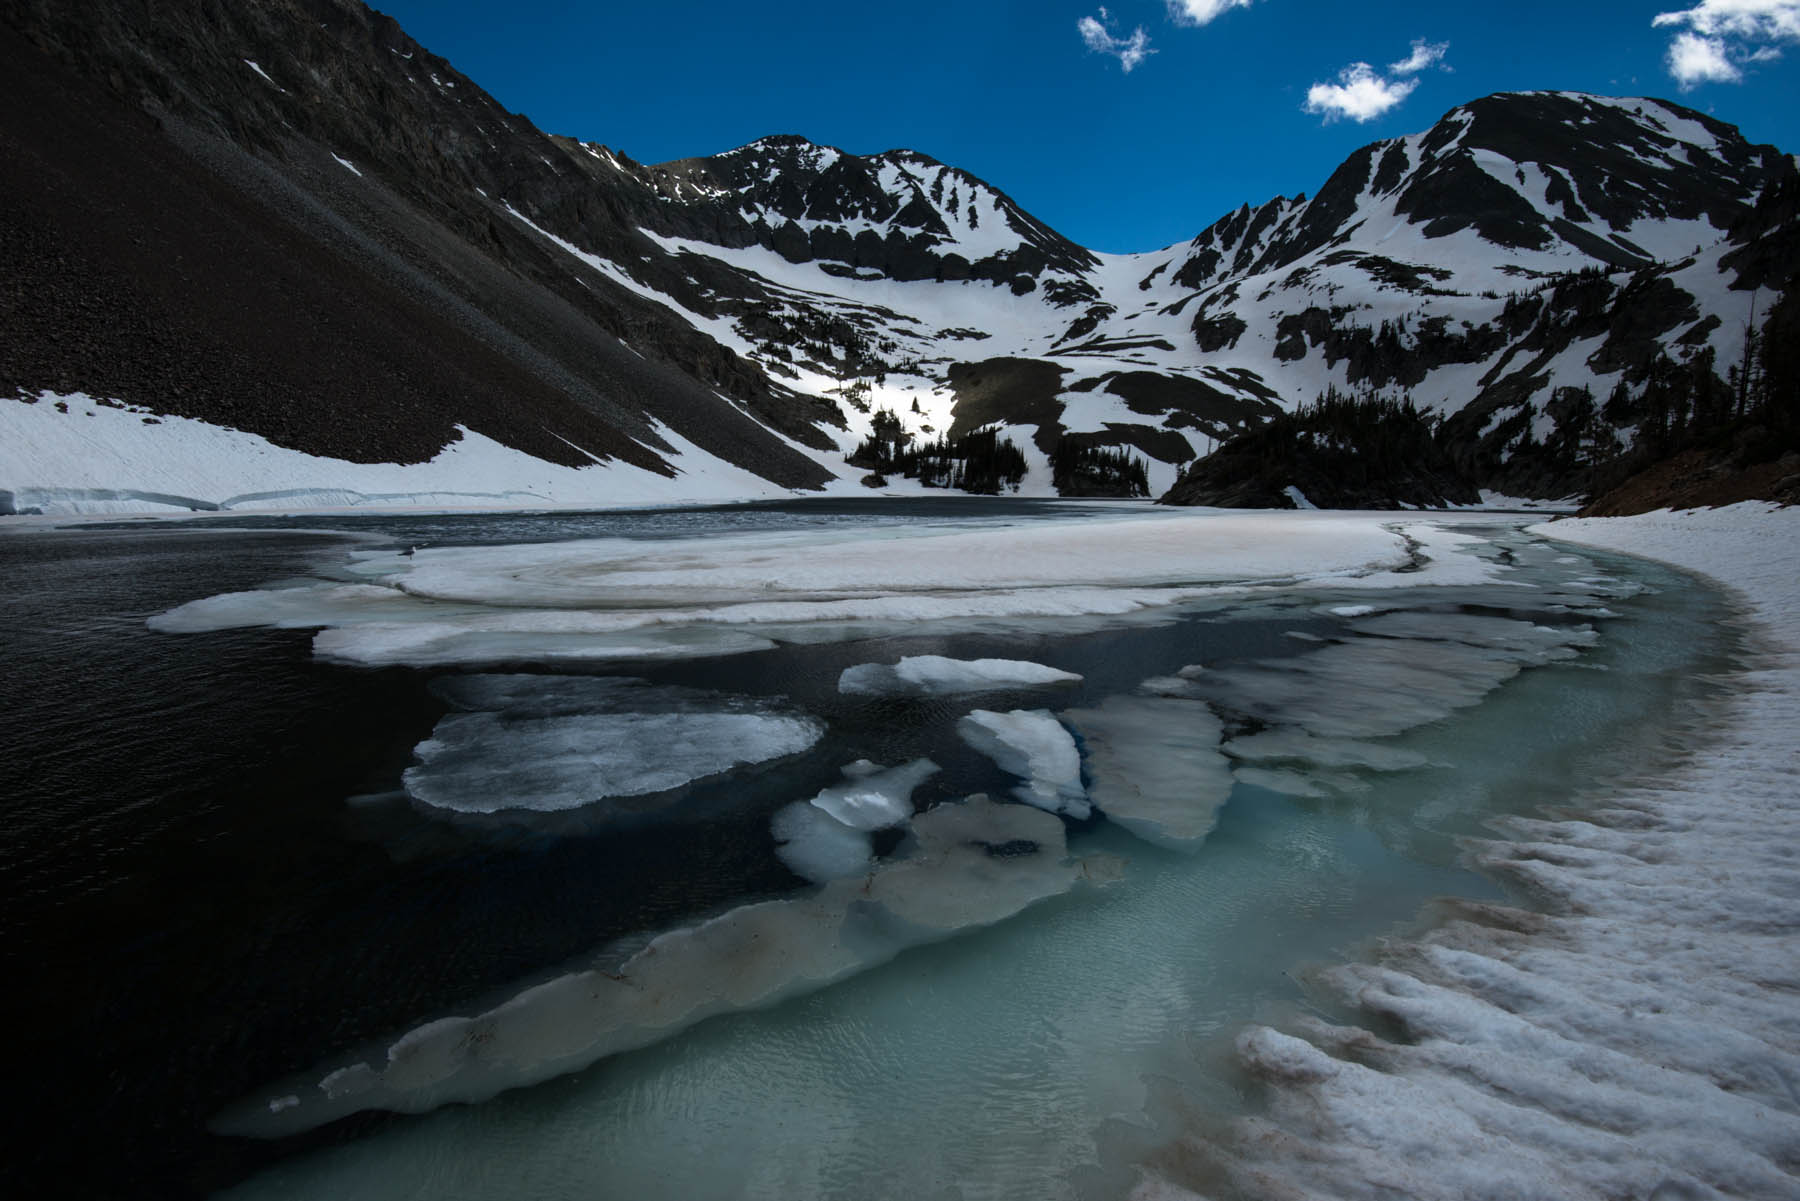 Ice out at Lake Agnes in Colorado's Never Summer Range high in the North Platte watershed.